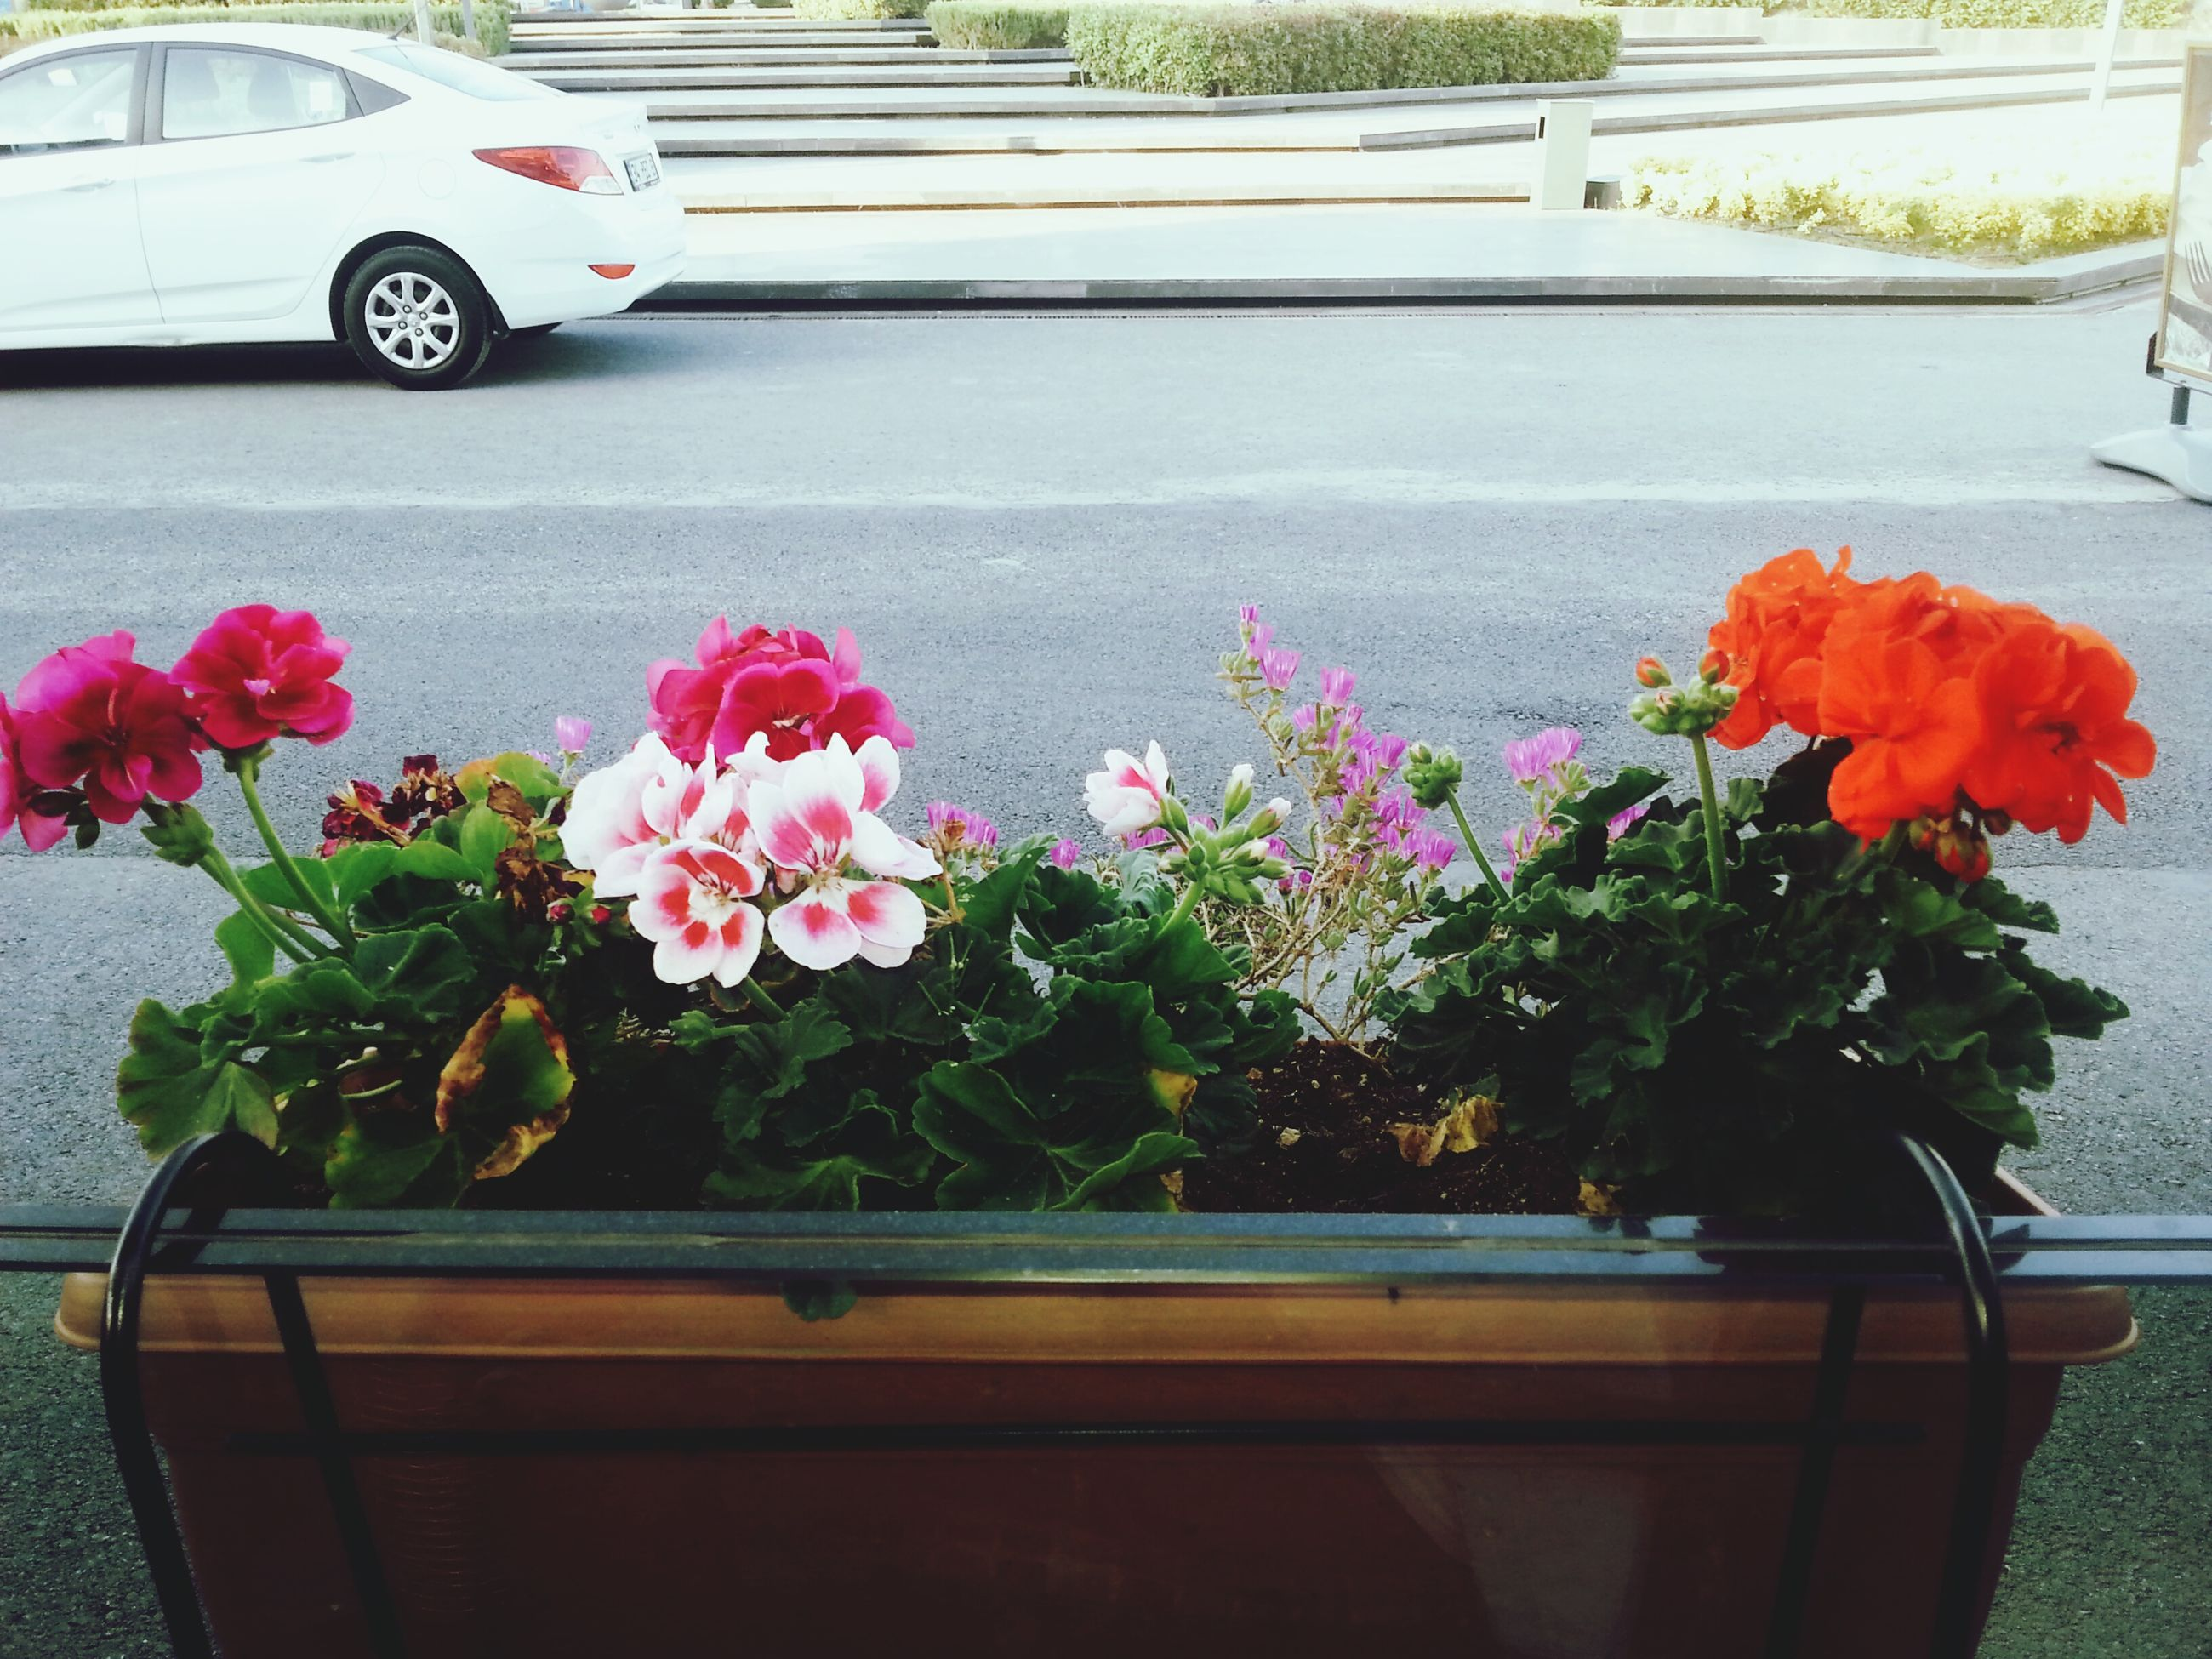 flower, freshness, plant, fragility, growth, potted plant, petal, flower head, beauty in nature, blooming, pink color, nature, flower pot, leaf, front or back yard, in bloom, day, high angle view, outdoors, transportation